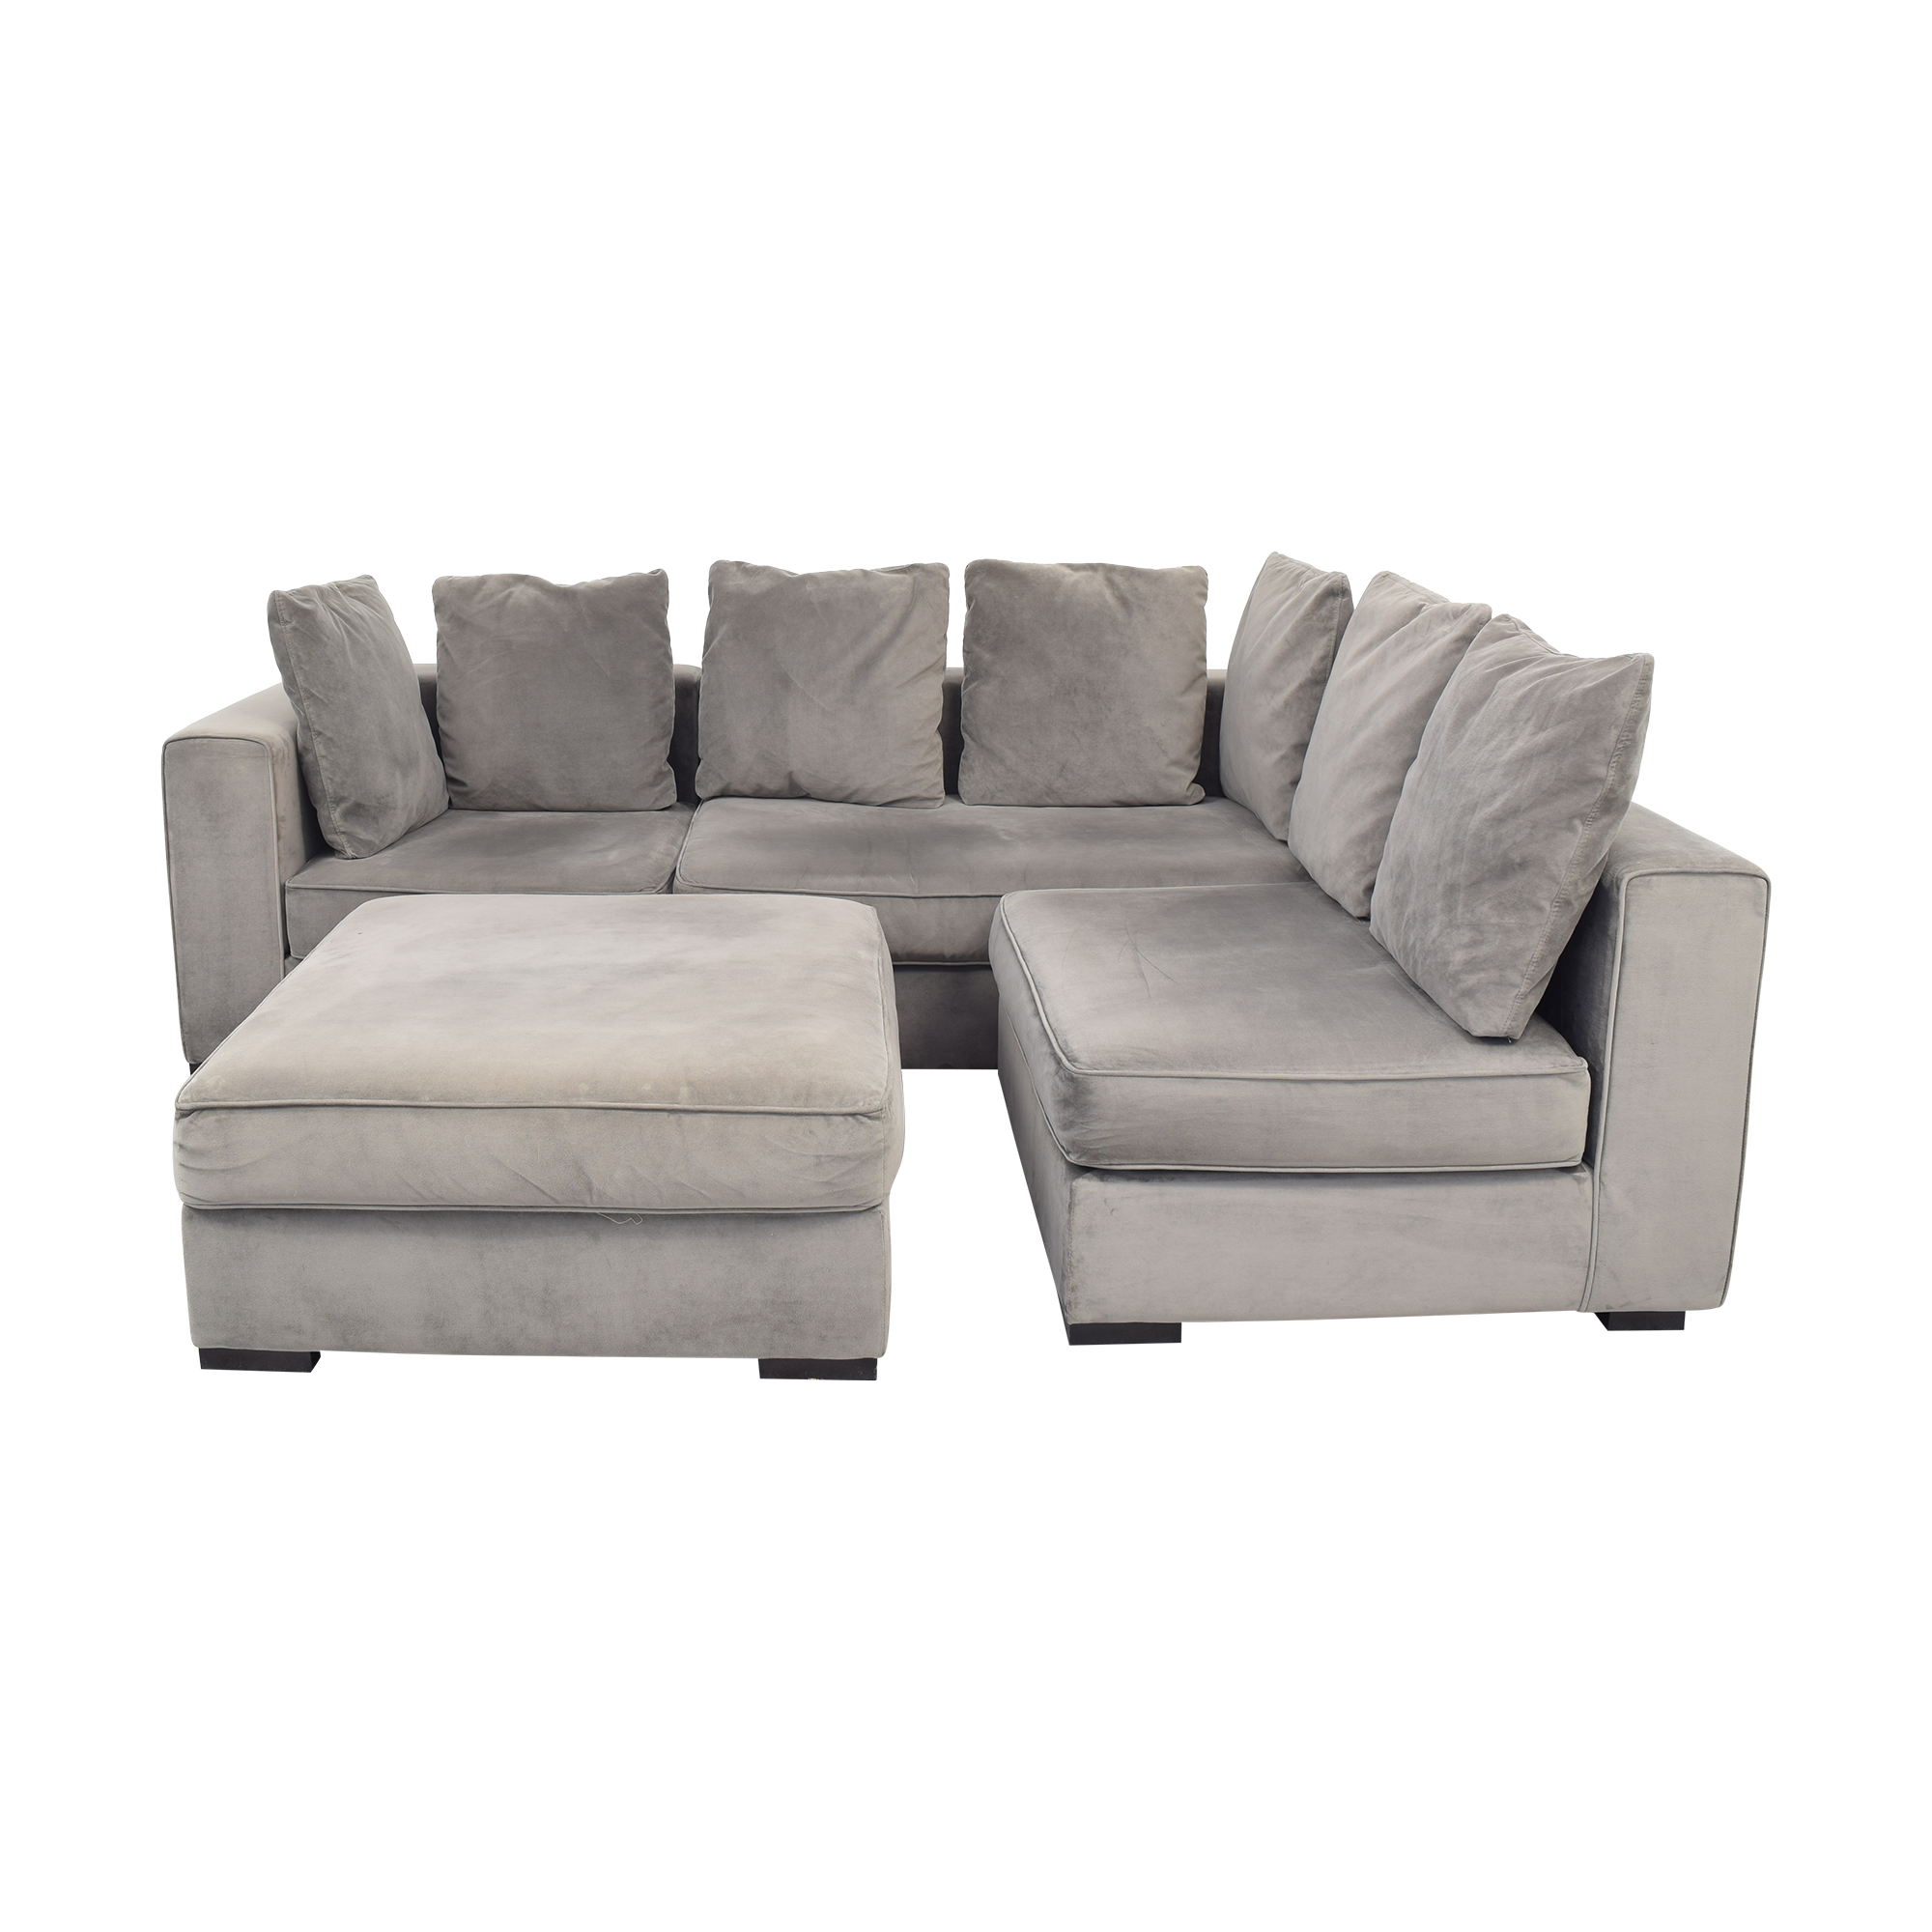 West Elm West Elm 3-Piece Sectional with Ottoman grey